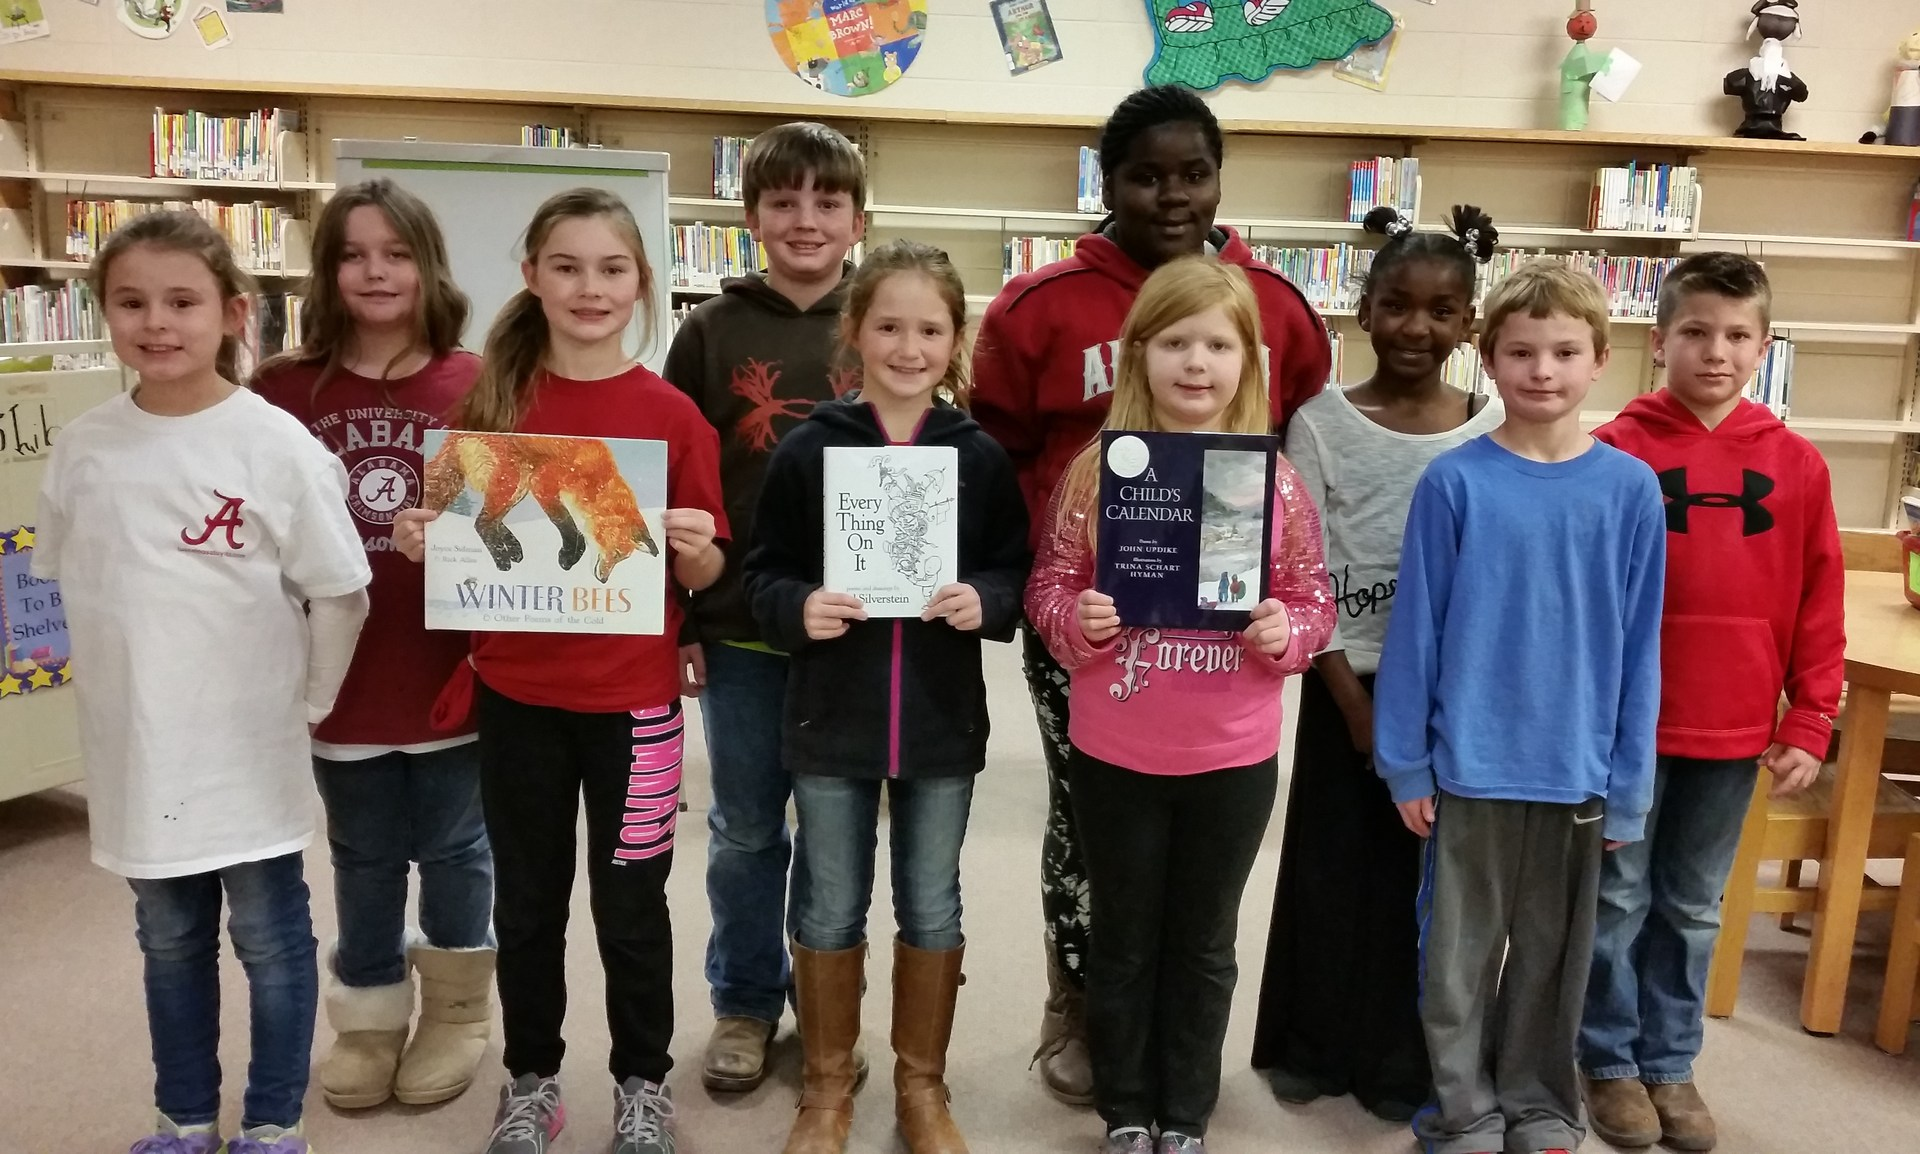 Poetry books donated in honor of former BES teacher, Karen Compere.